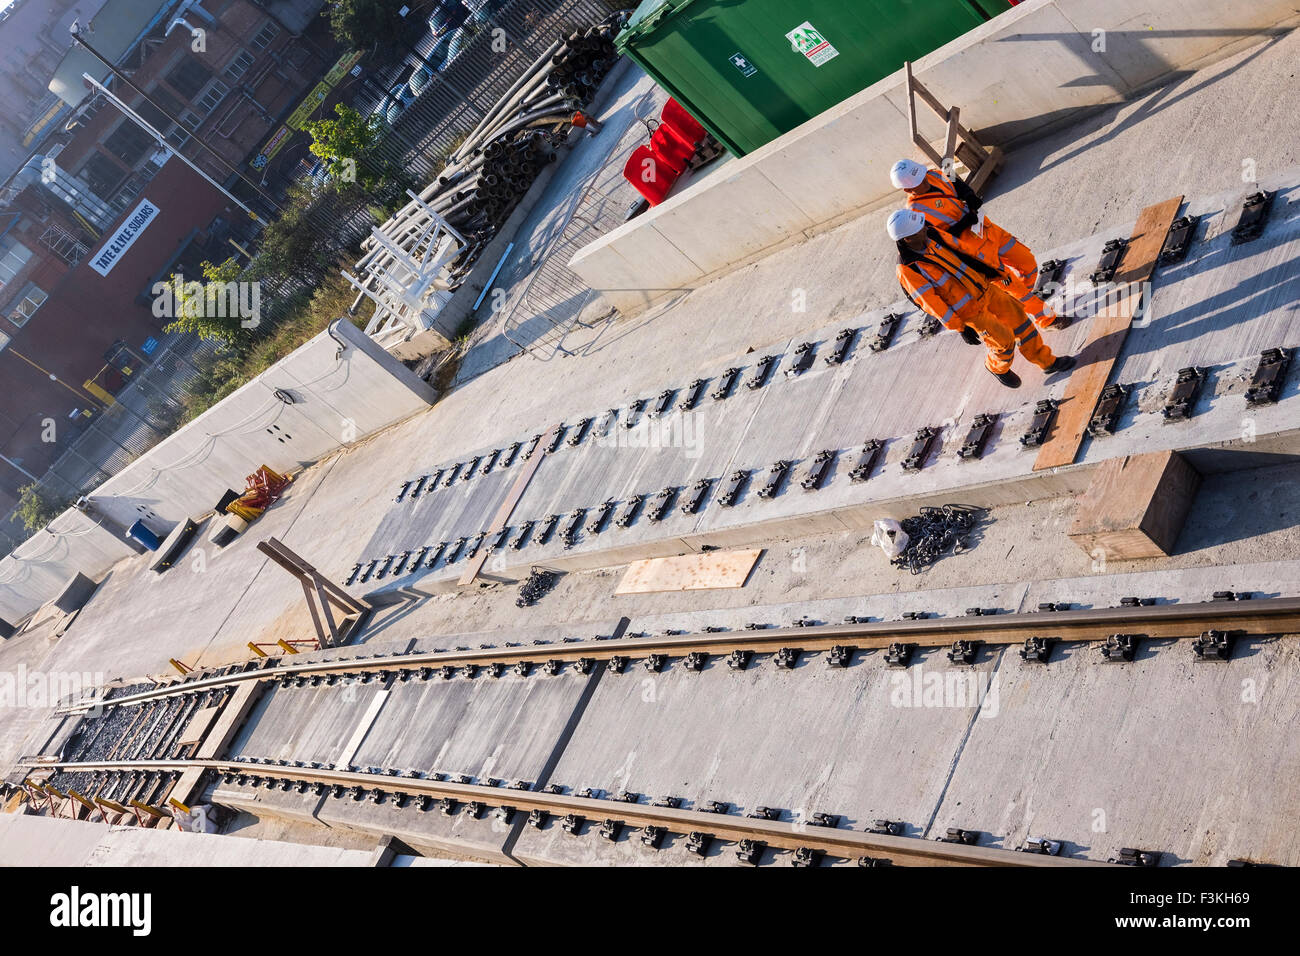 Crossrail track, Silvertown, London, England, U.K. - Stock Image